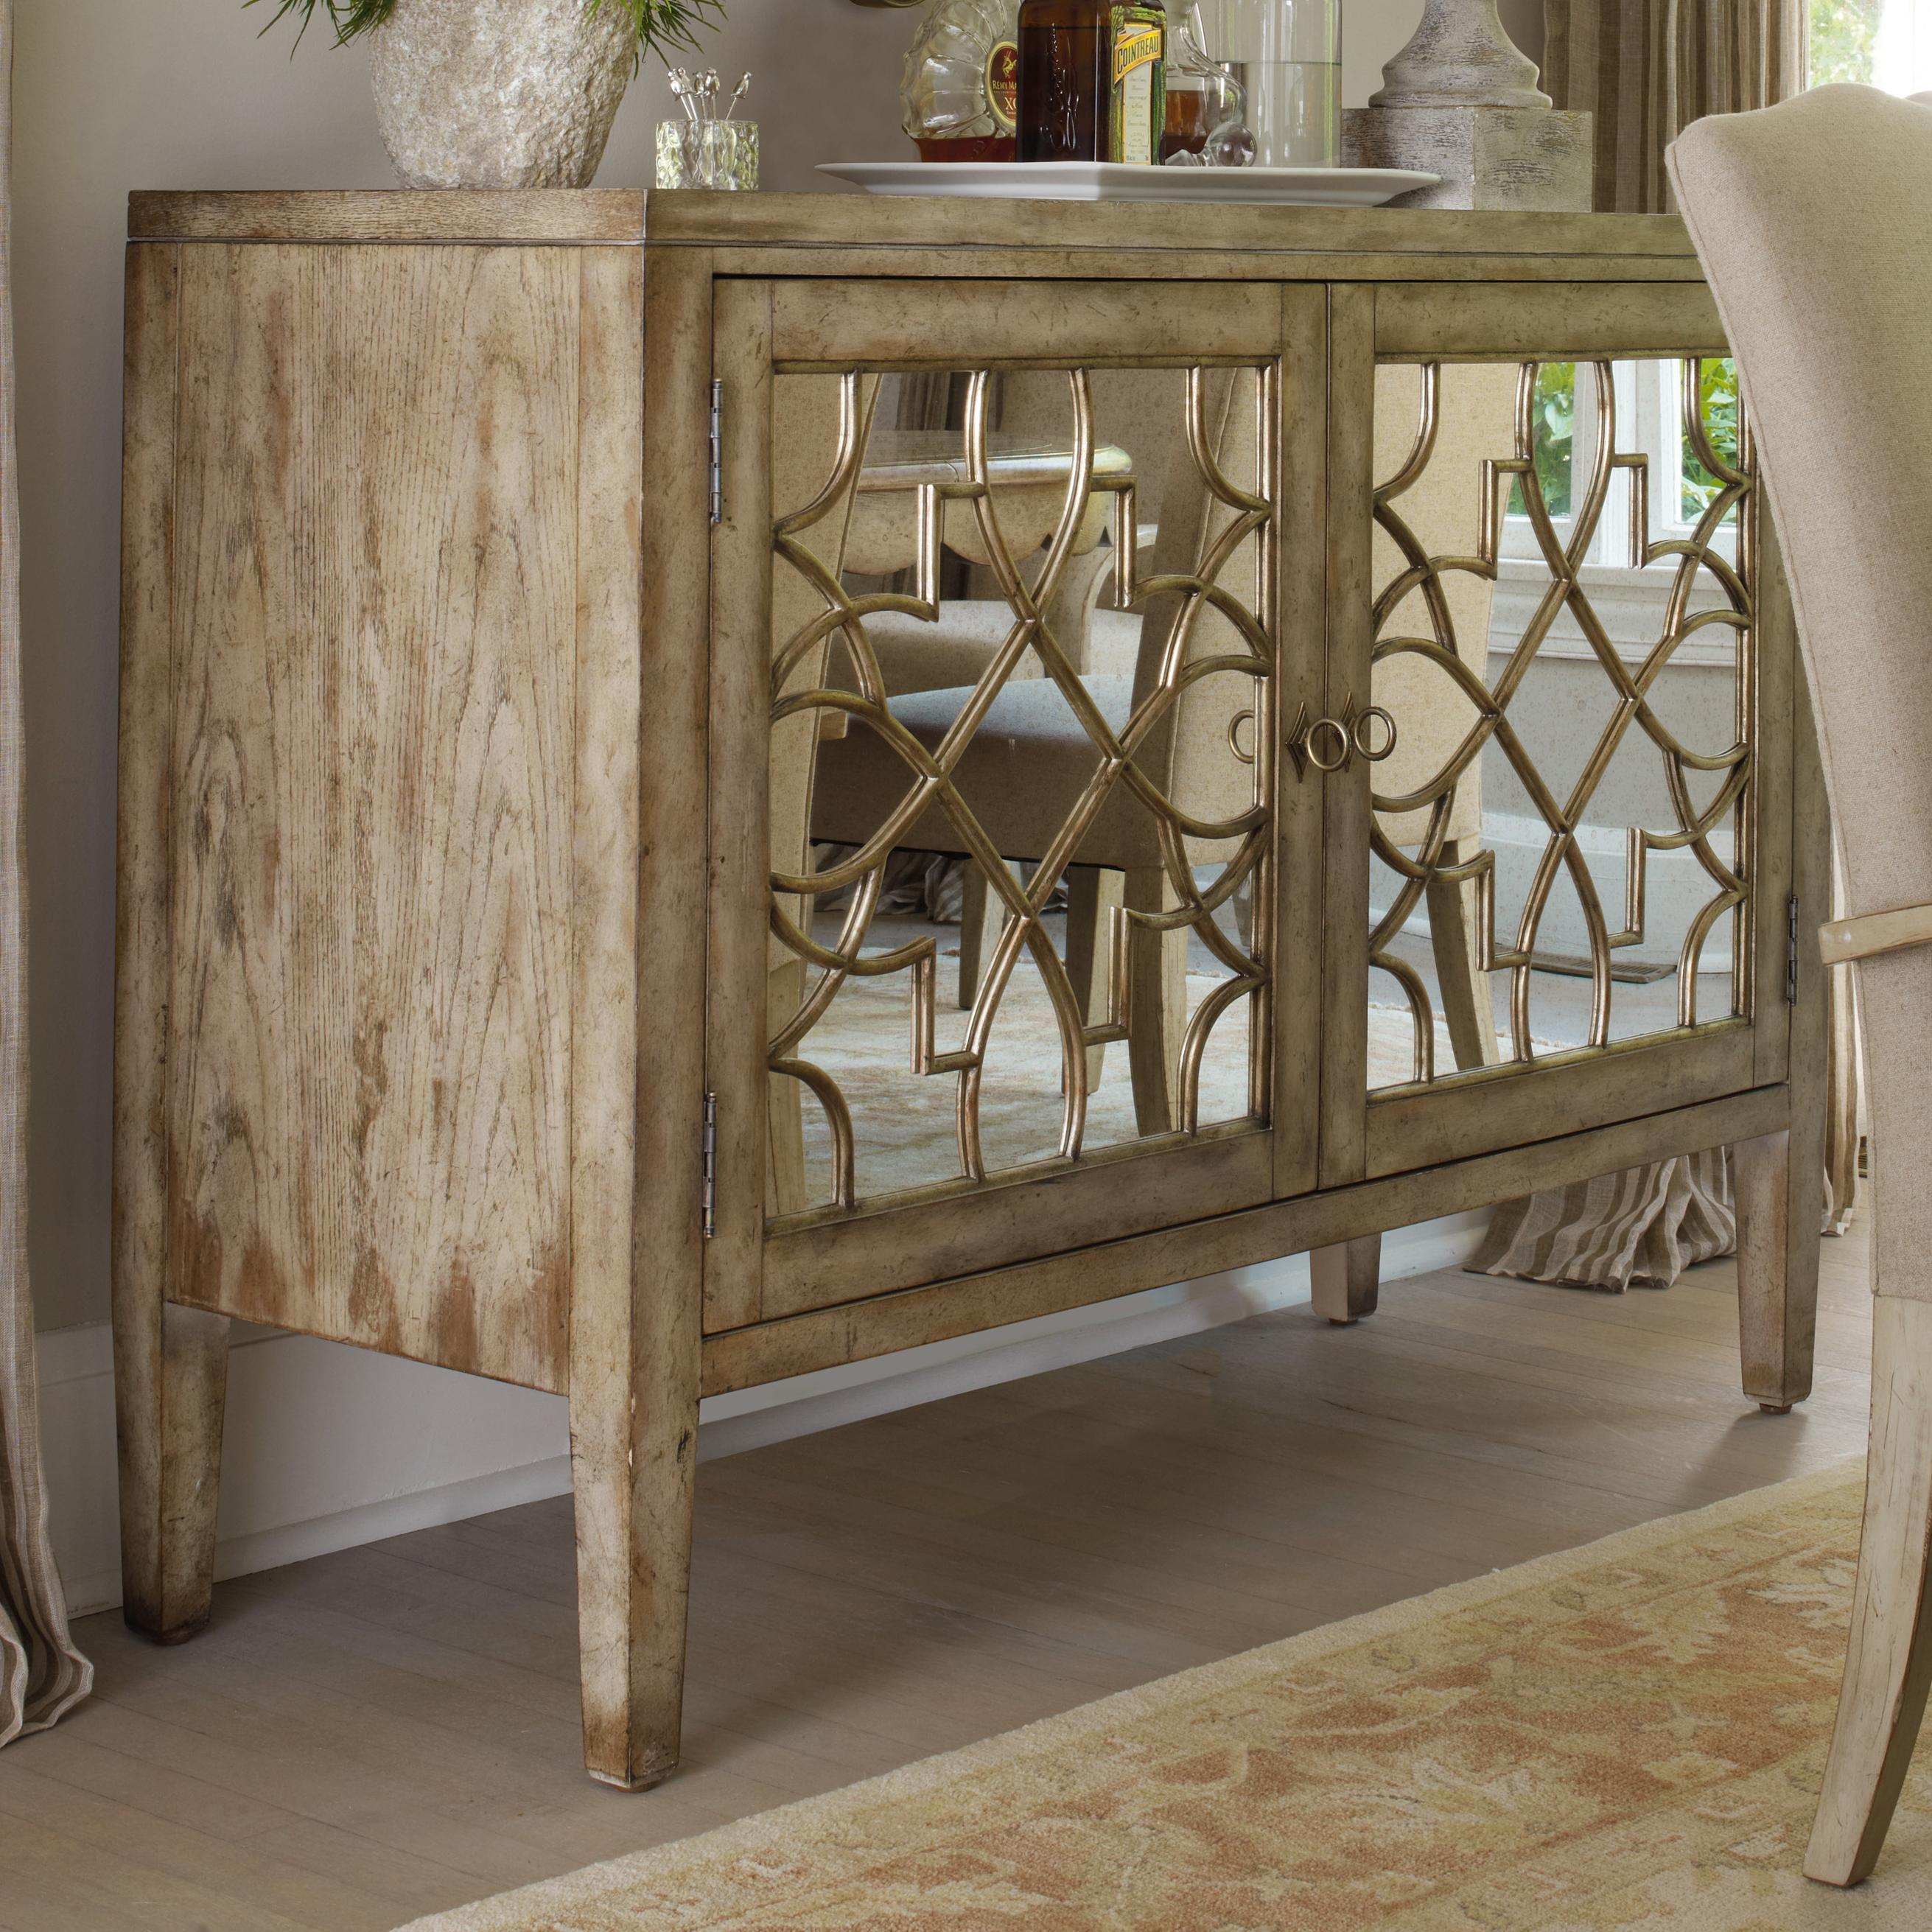 Sanctuary Two Door Mirrored Console By Hooker Furniture At Dunk Bright Furniture